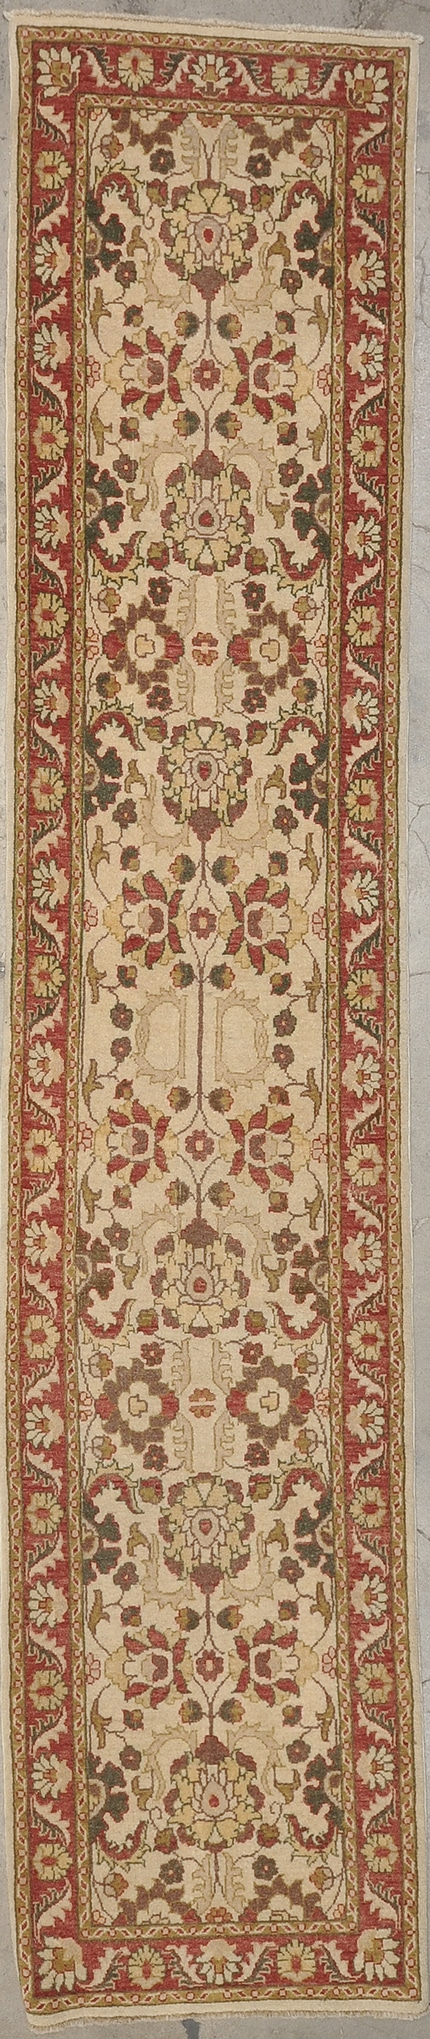 Ziegler & Co Oushak rugs and more oriental carpet 33636-